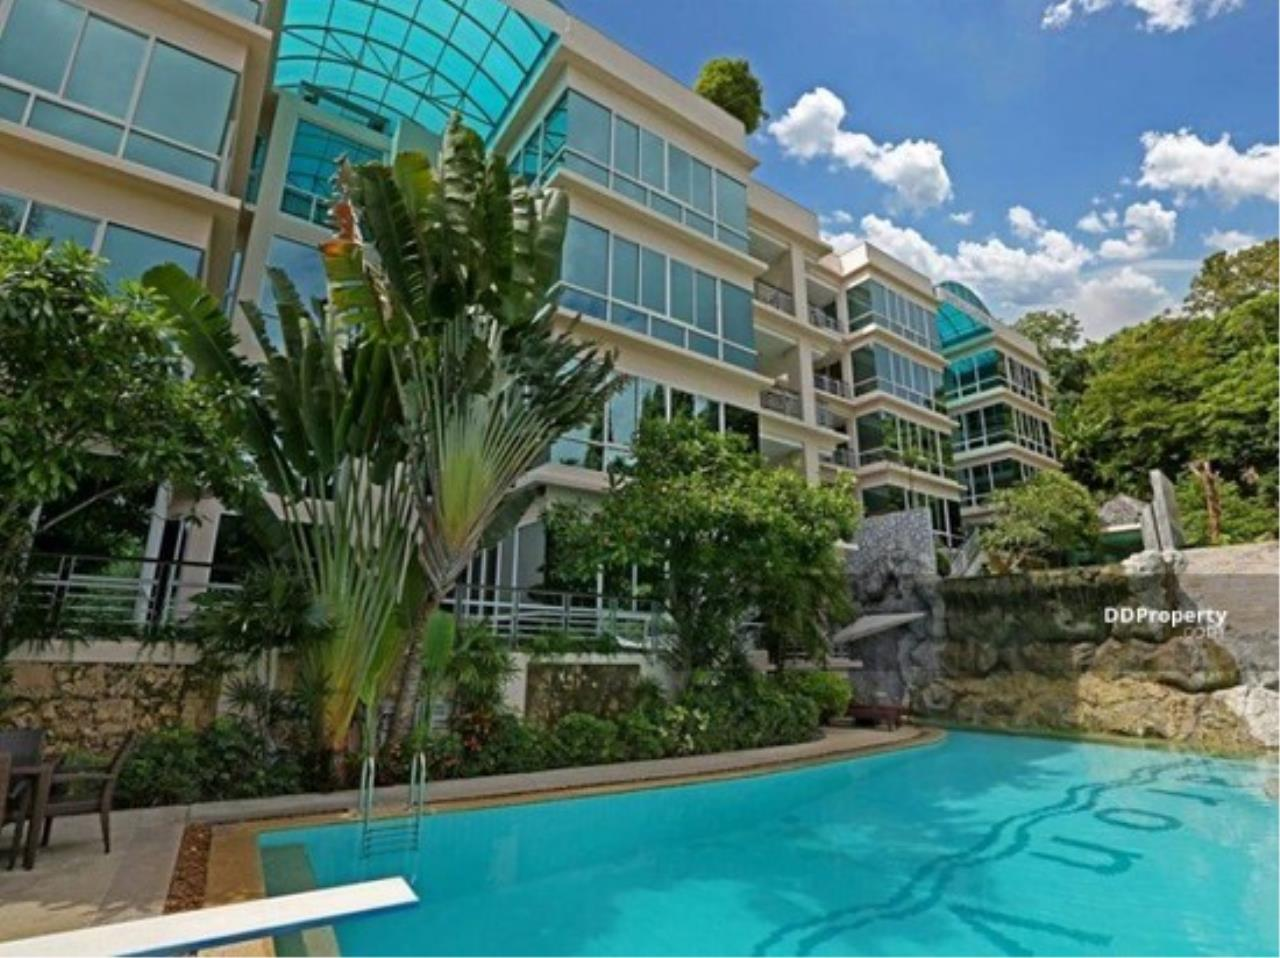 The Agent Property Agency's Karon View Condominium Size 156.25 sqm. Pool View 2 Bed 2 Bath 1 Floors 1 Balcony Wide View Pool Very good room Built-in good location near the beach, only 3 minutes to the beach, Jungceylon for rent, living. 19